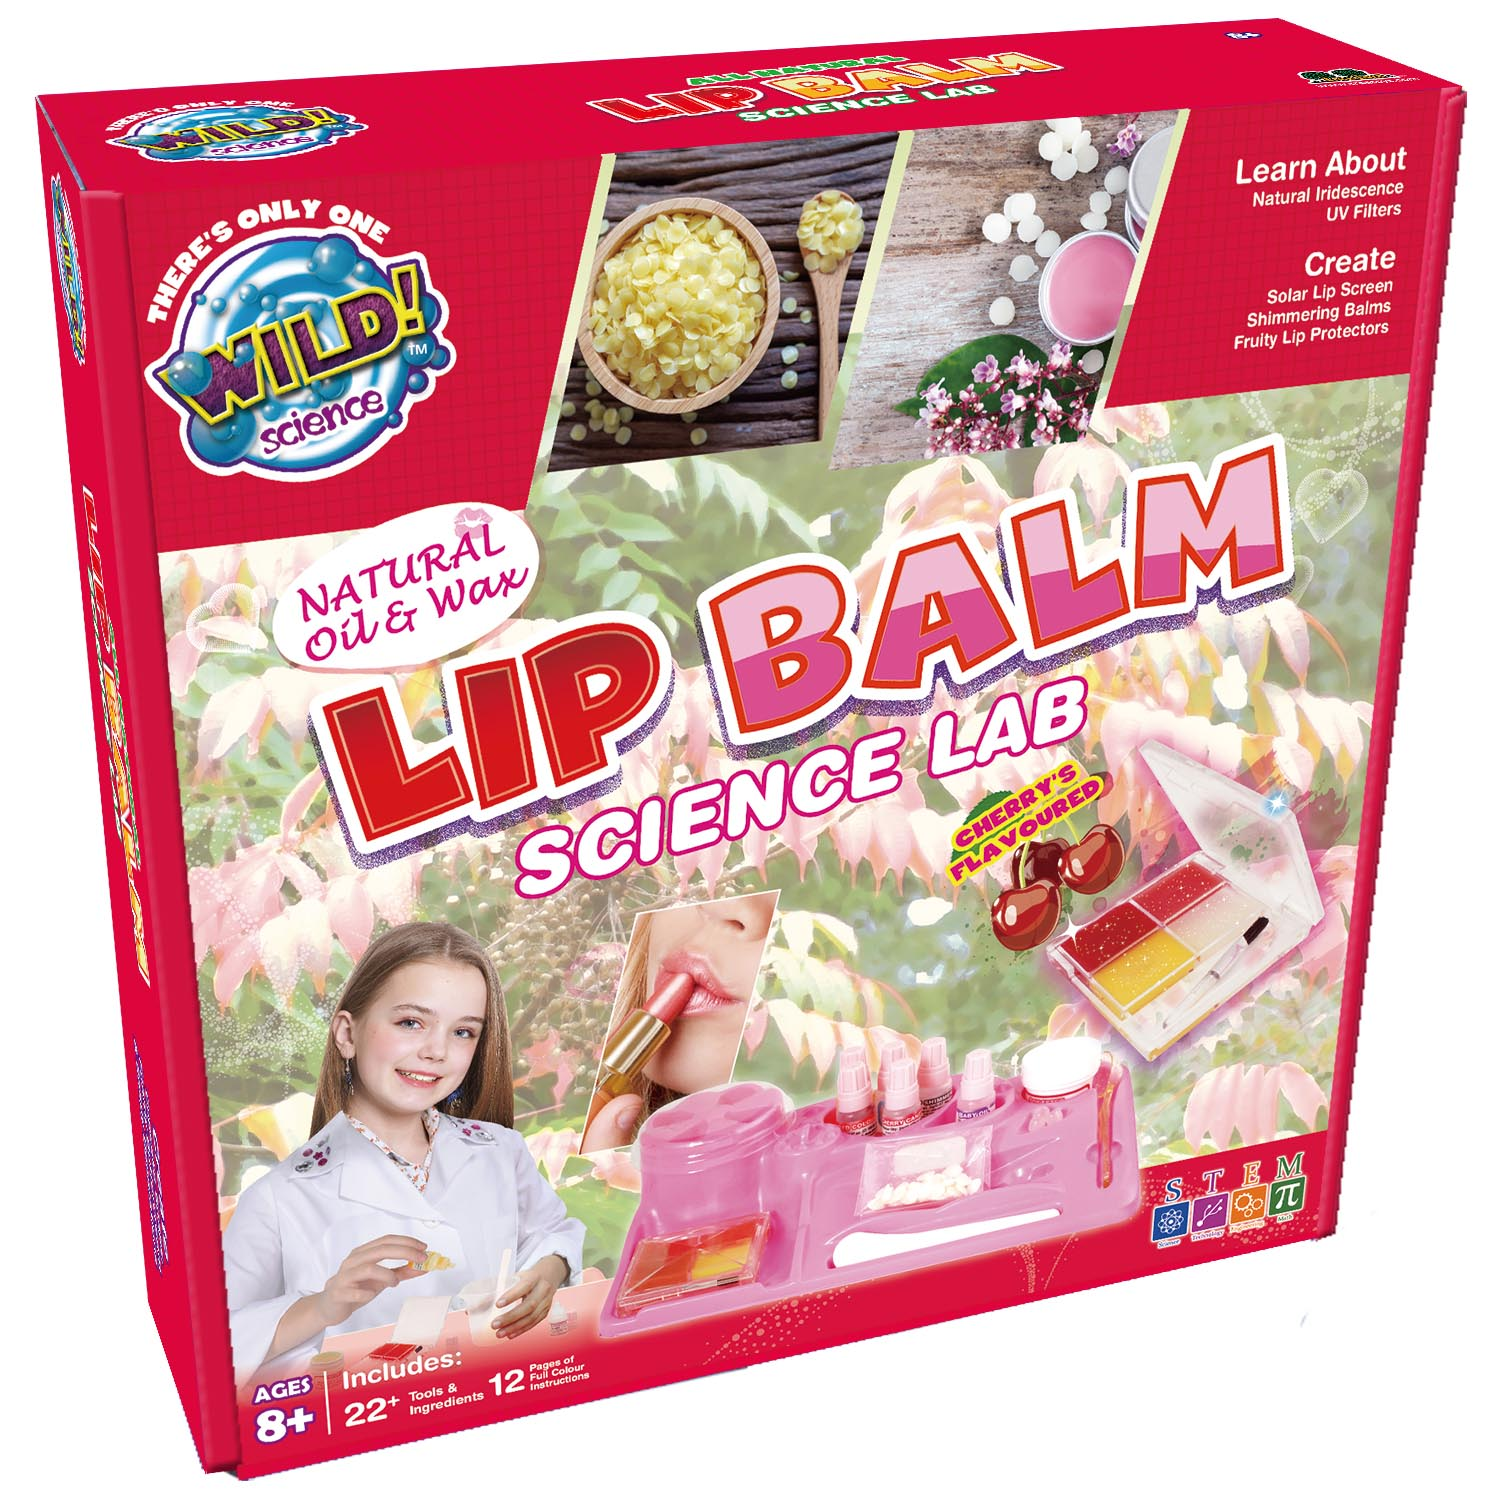 Lip Balm Science Lab